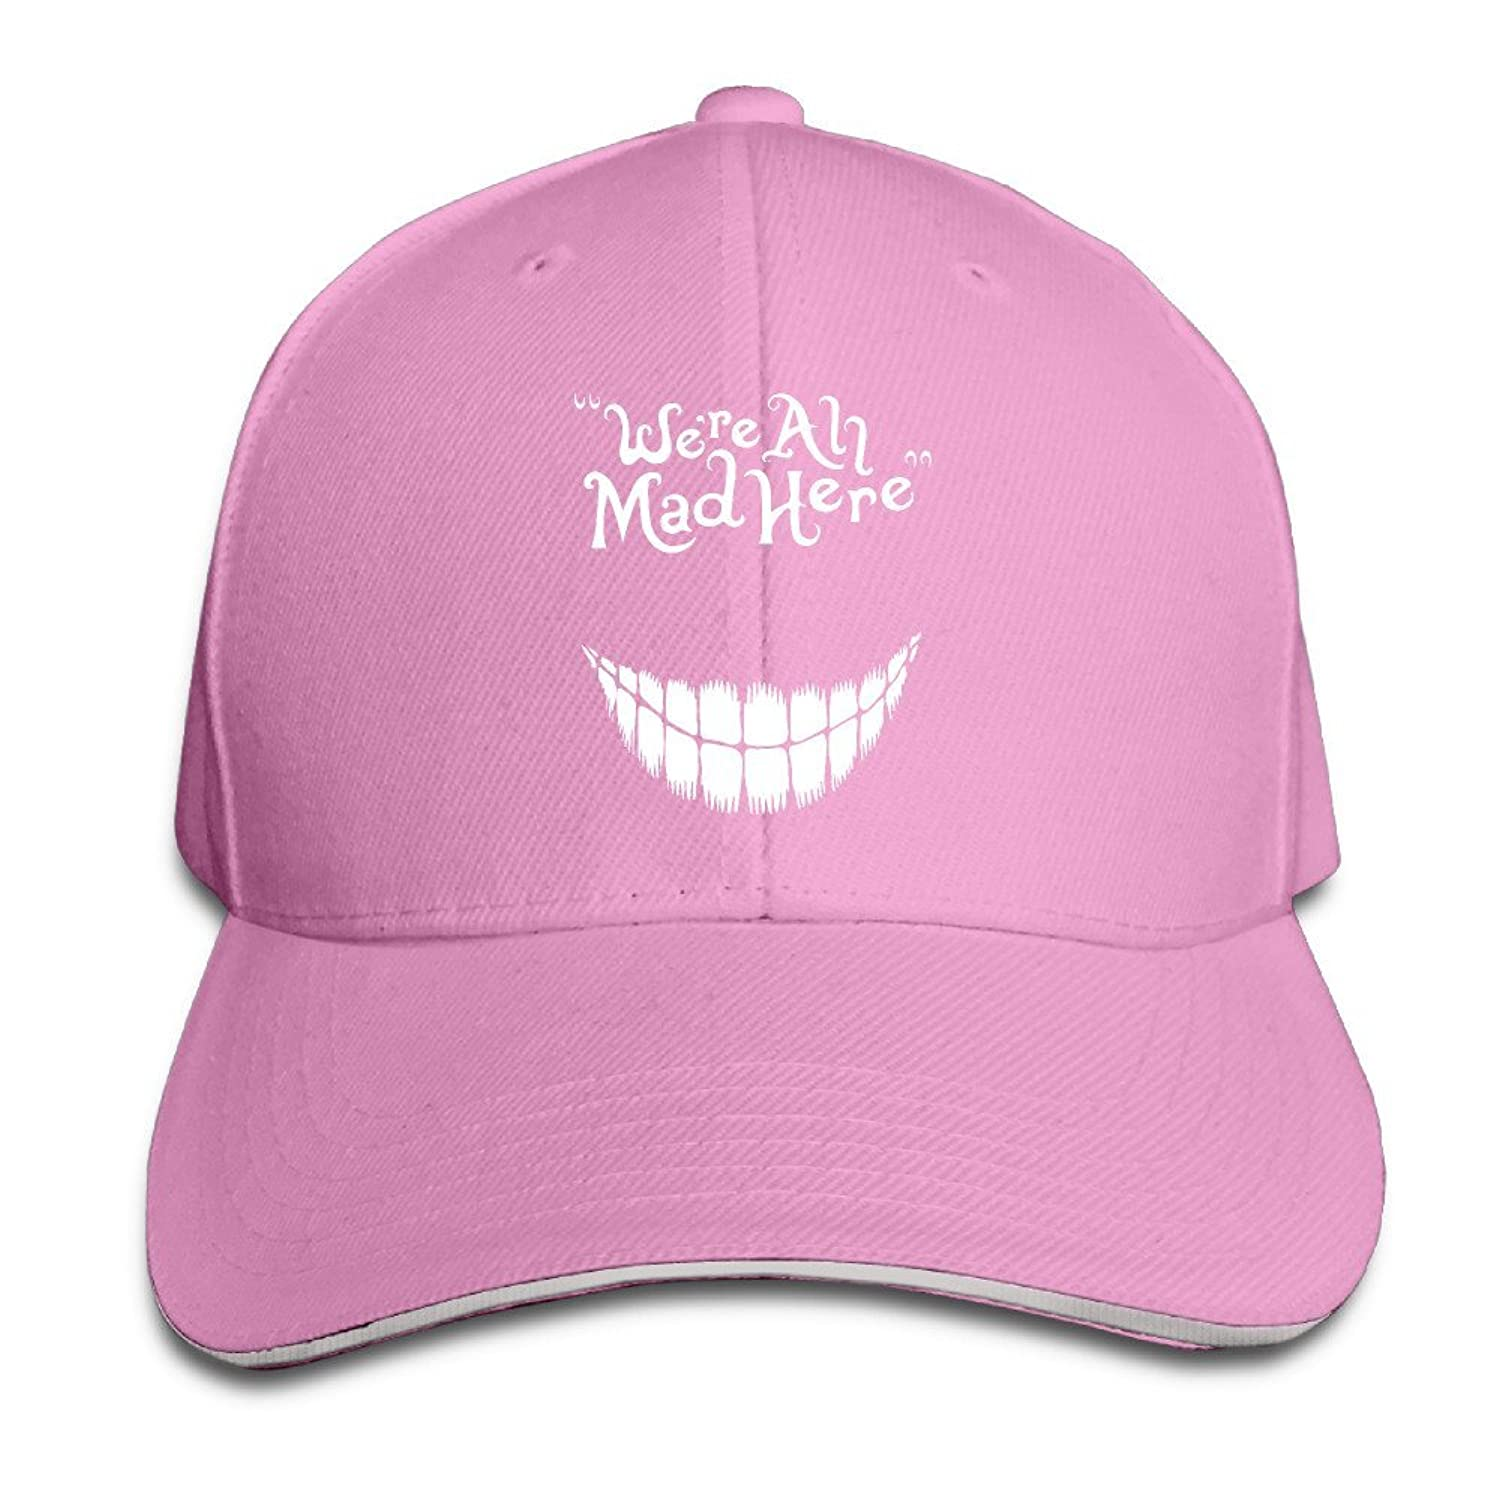 FOODE We Are All Mad Here Peaked Baseball Cap Snapback Hats